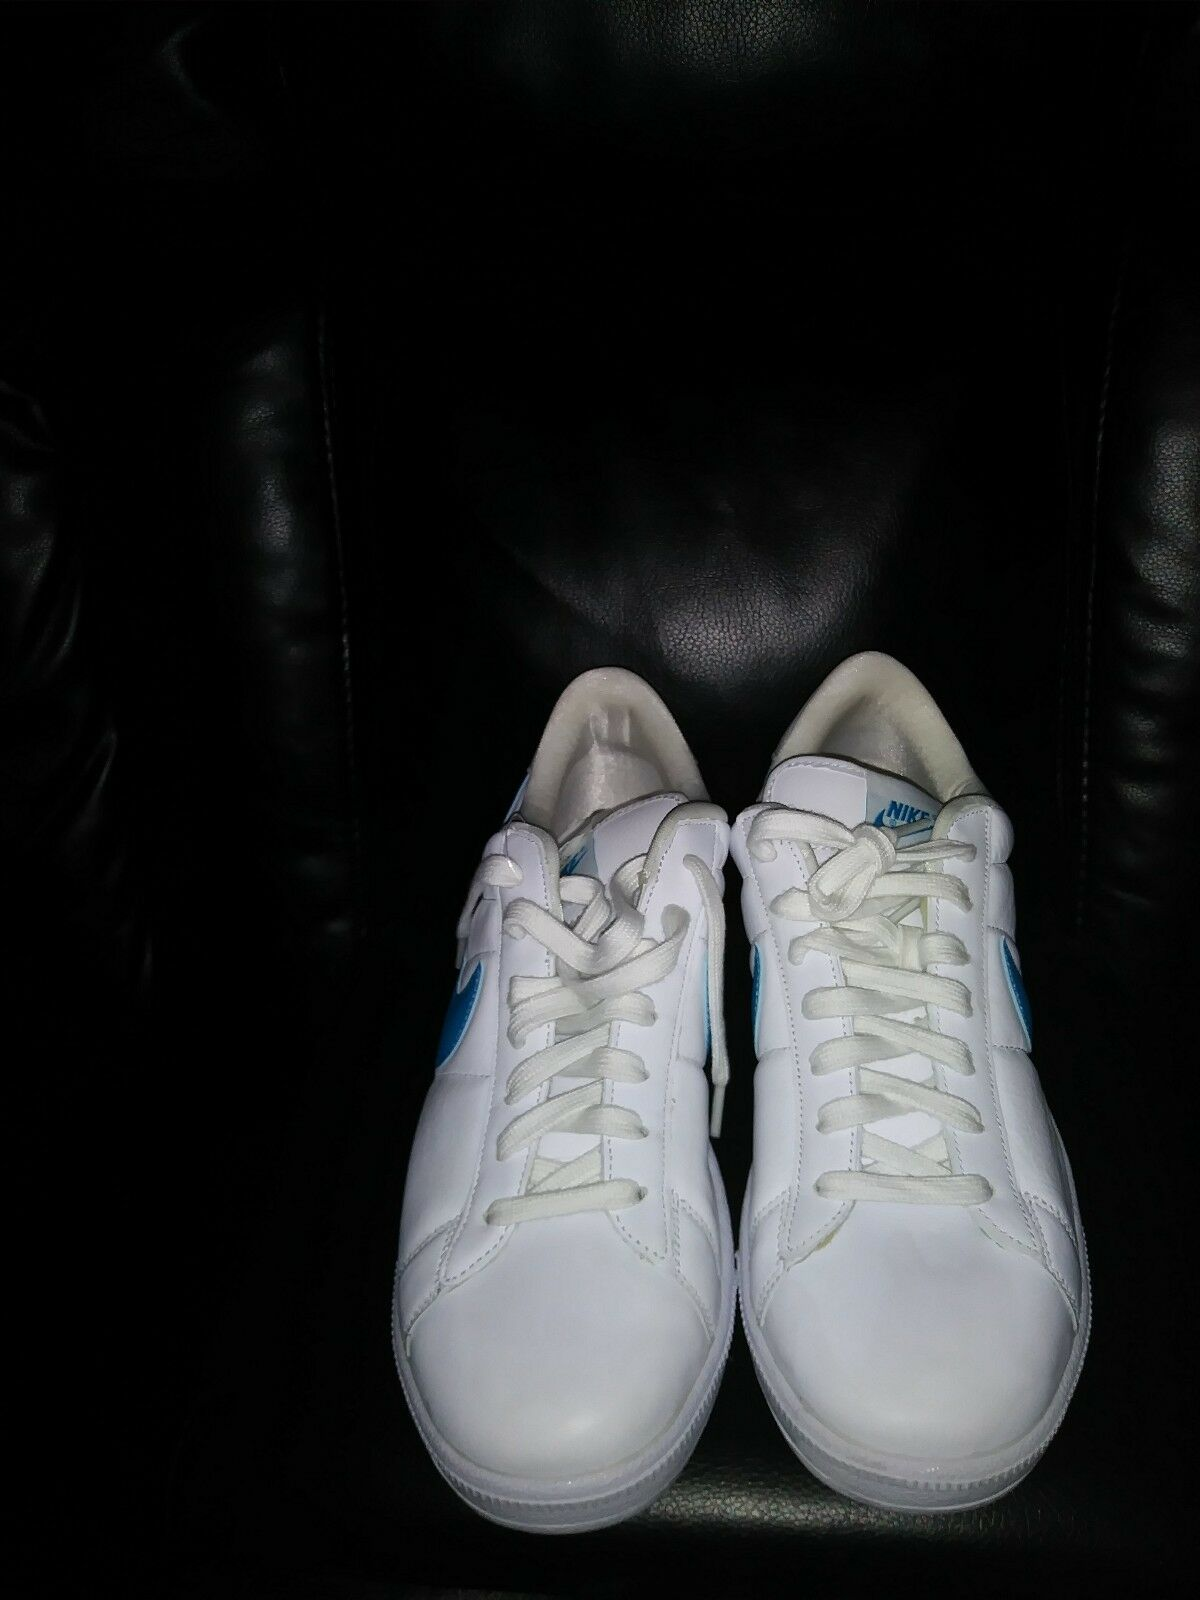 nike tennis classic mens white leatbef lace up shoes